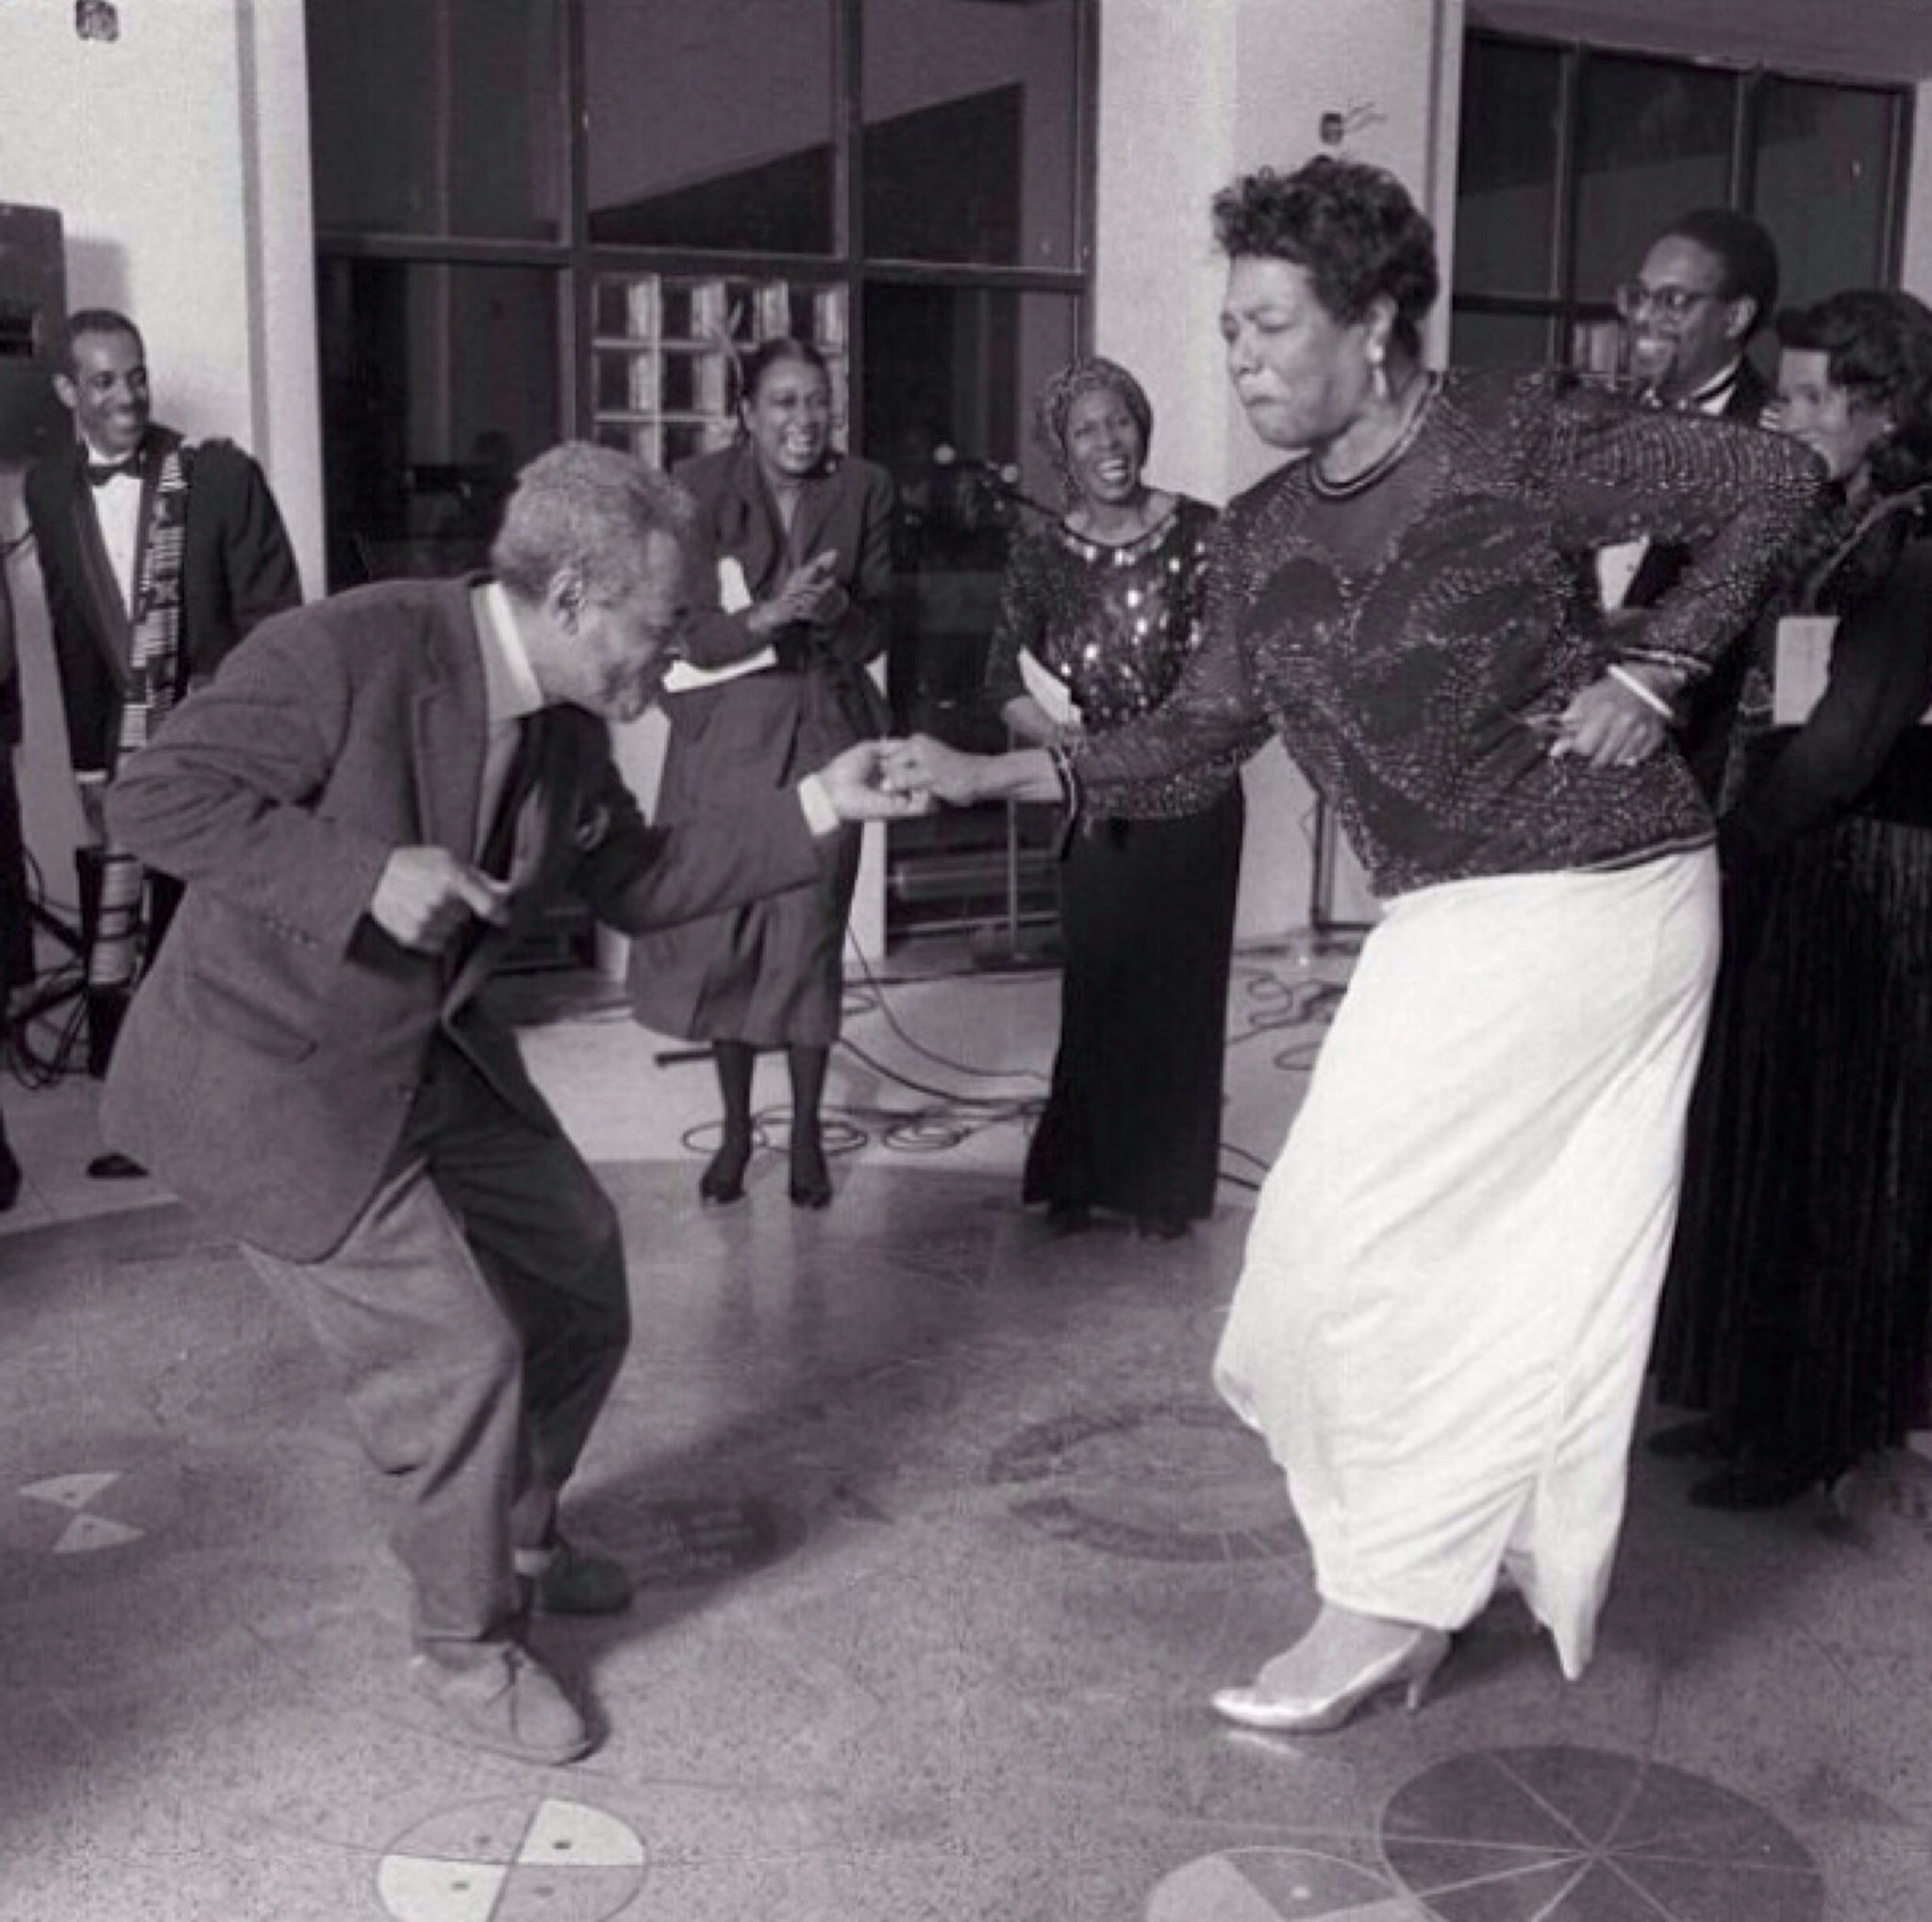 Maya Angelou Dancing With The Poet Amiri Baraka Over The Ashes Of